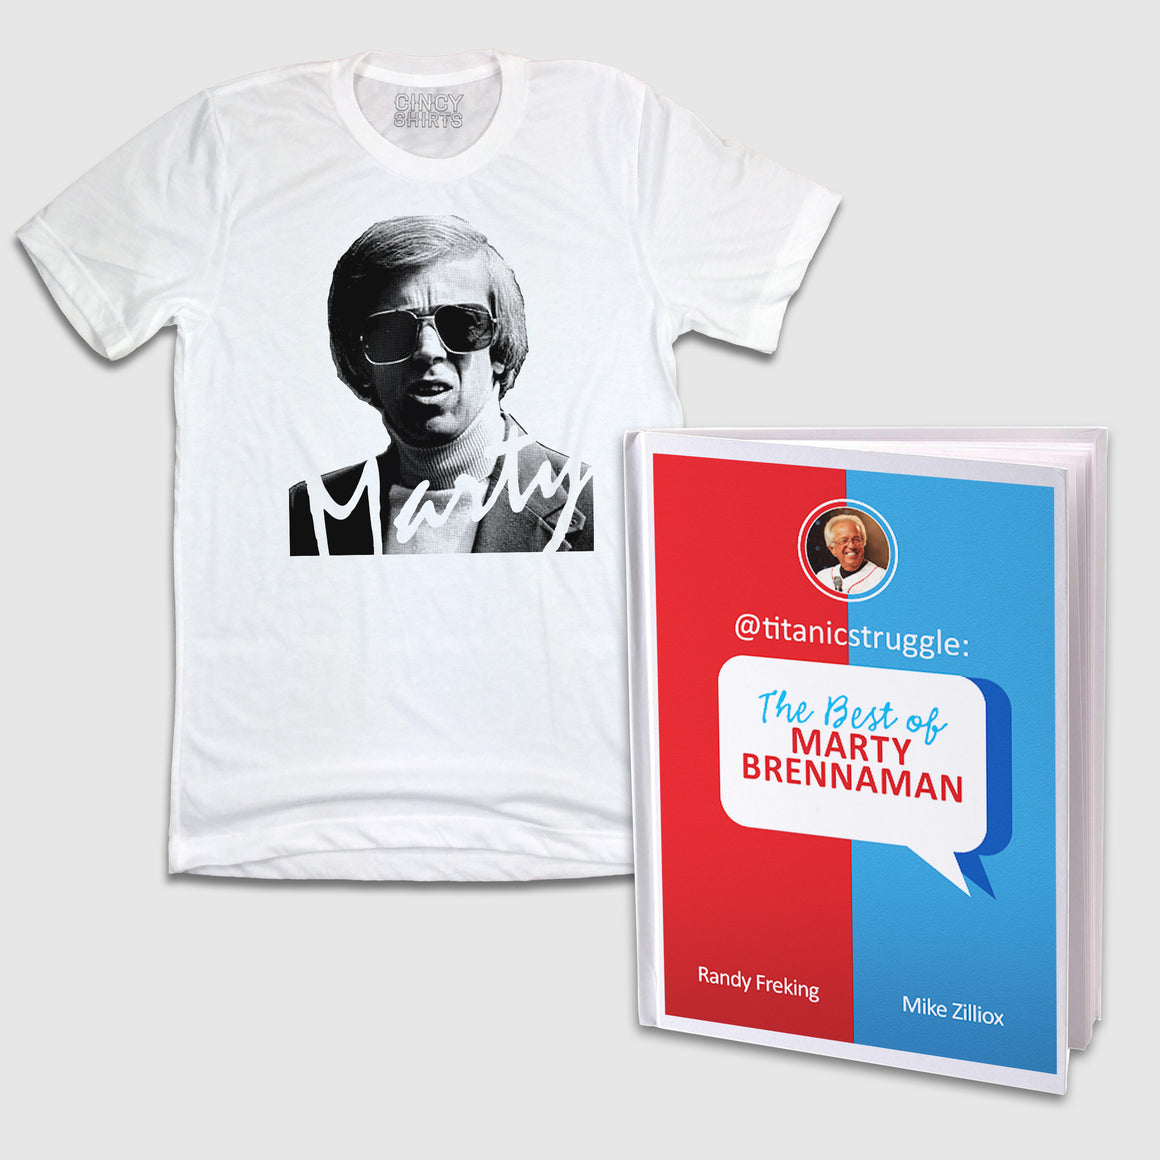 "@titanicstruggle: The Best of Marty Brennaman Book & ""Marty Party"" Tee Combo"